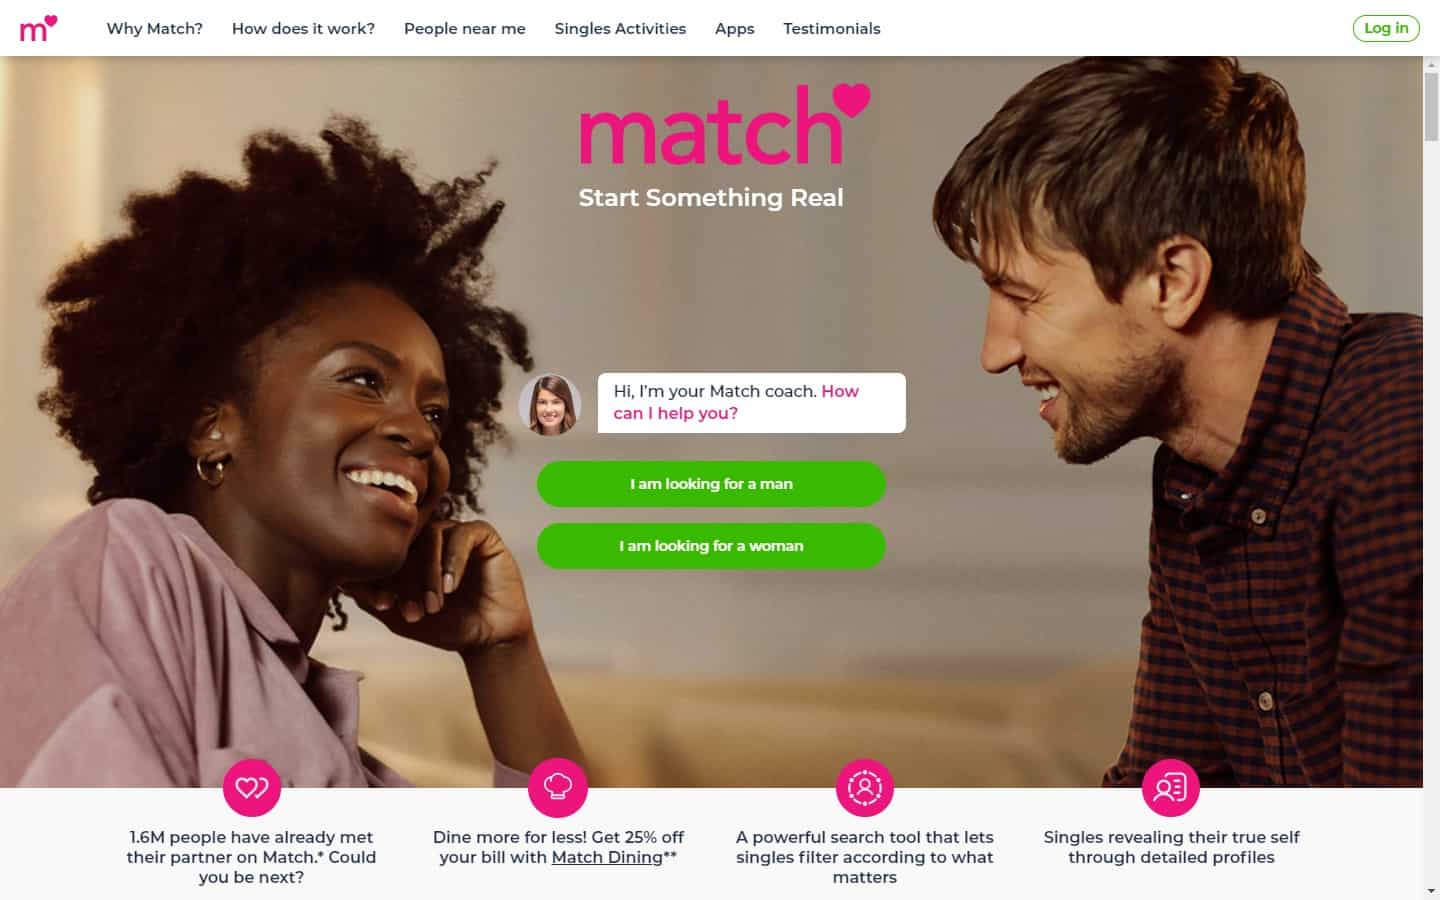 Test winner: Match - Dating site